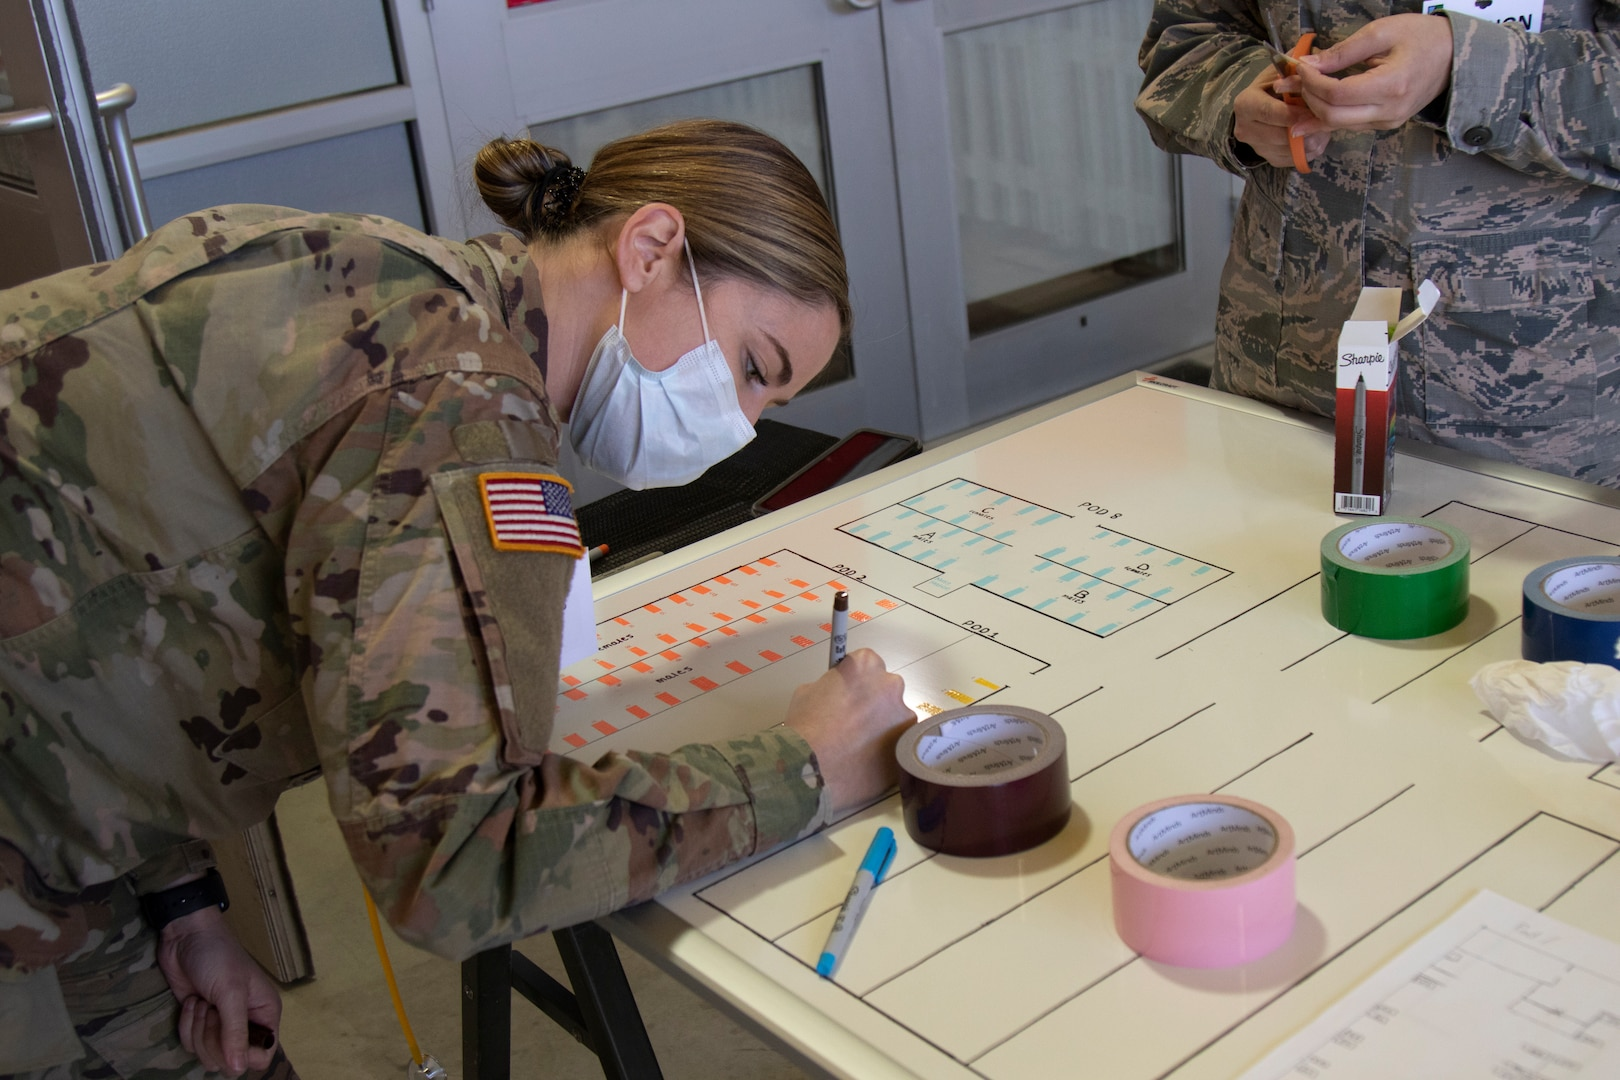 Army 1st Lt. Joan Emerson of Charlie Company, 186th Brigade Support Battalion, records the hospital beds that are part of each medical pod at the Alternate Healthcare Facility in Essex, Vermont, on April 7th, 2020. The Vermont National Guard is working with the state of Vermont and emergency partners in a whole-of-government effort to flatten the curve during the COVID-19 pandemic. (U.S. Army National Guard photo by Cpl. Gillian McCreedy)